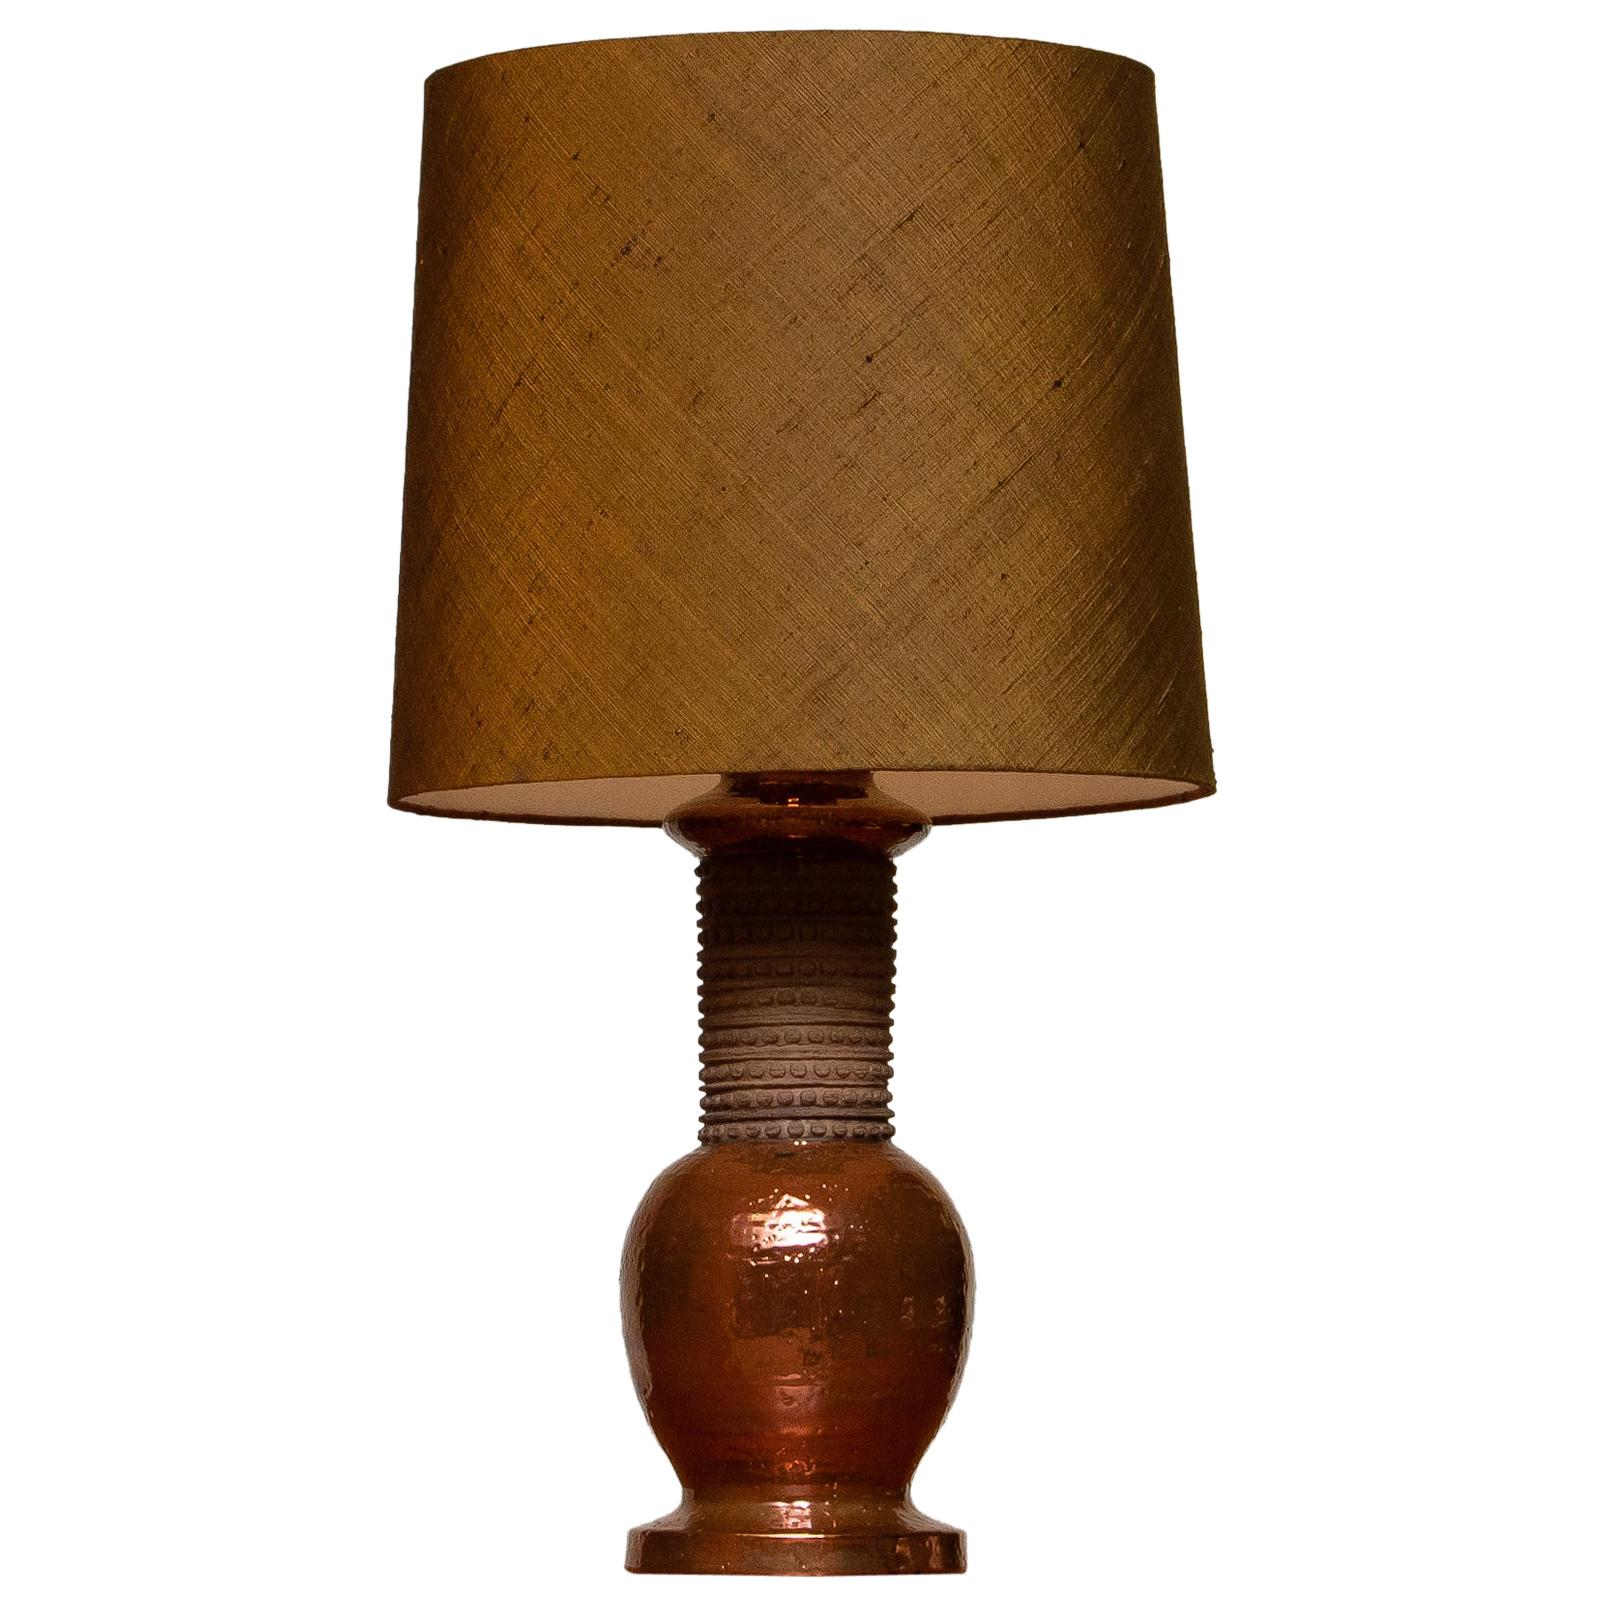 1960s, Ceramic and Copper Bitossi Italy Table Lamp for Bergboms, Sweden